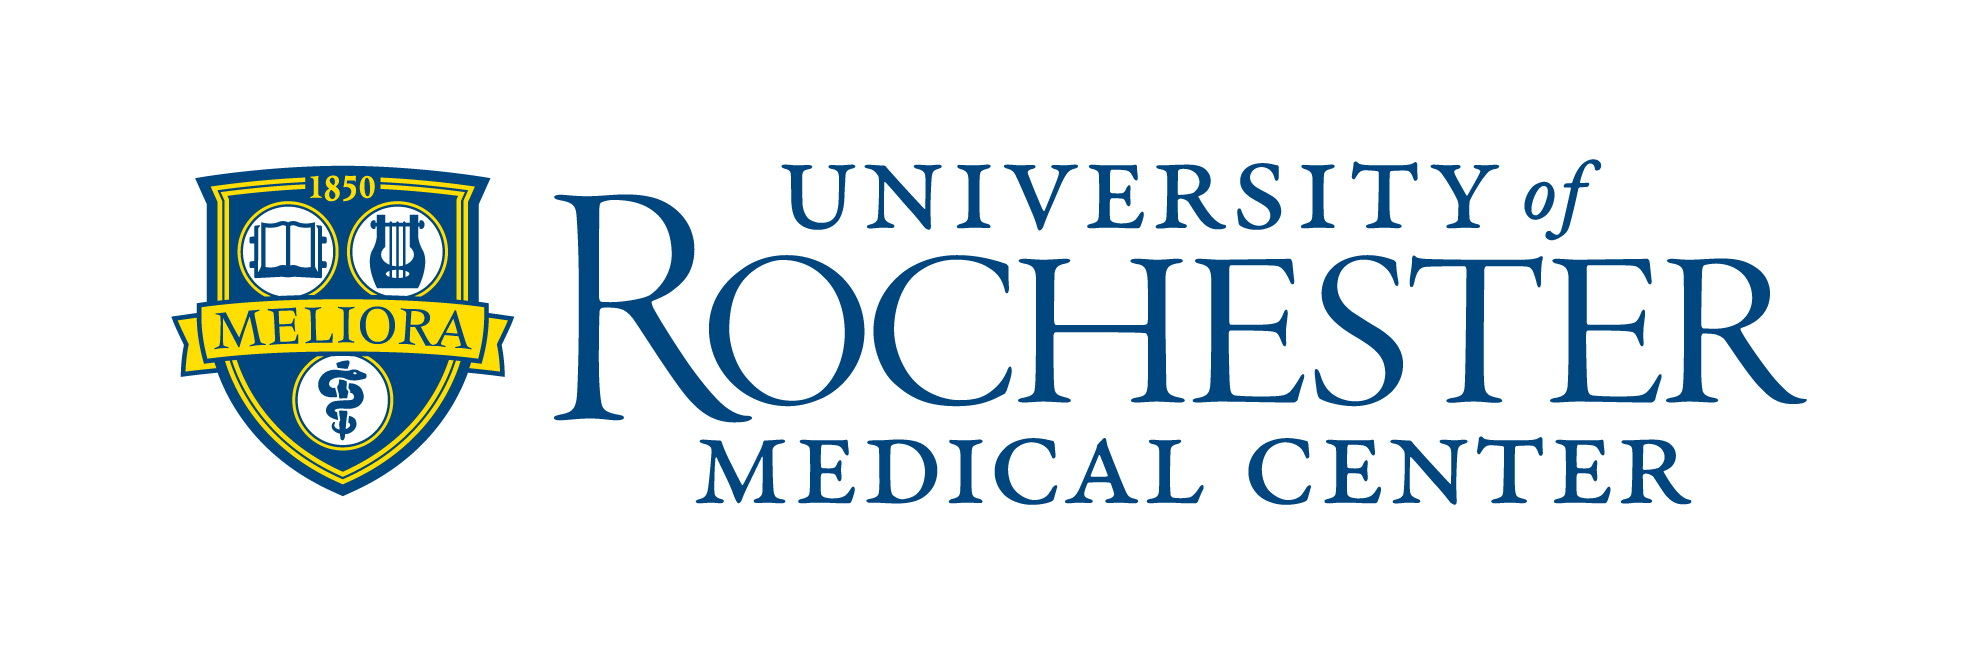 University of Rochester School of Medicine and Dentistry Secondary Essay